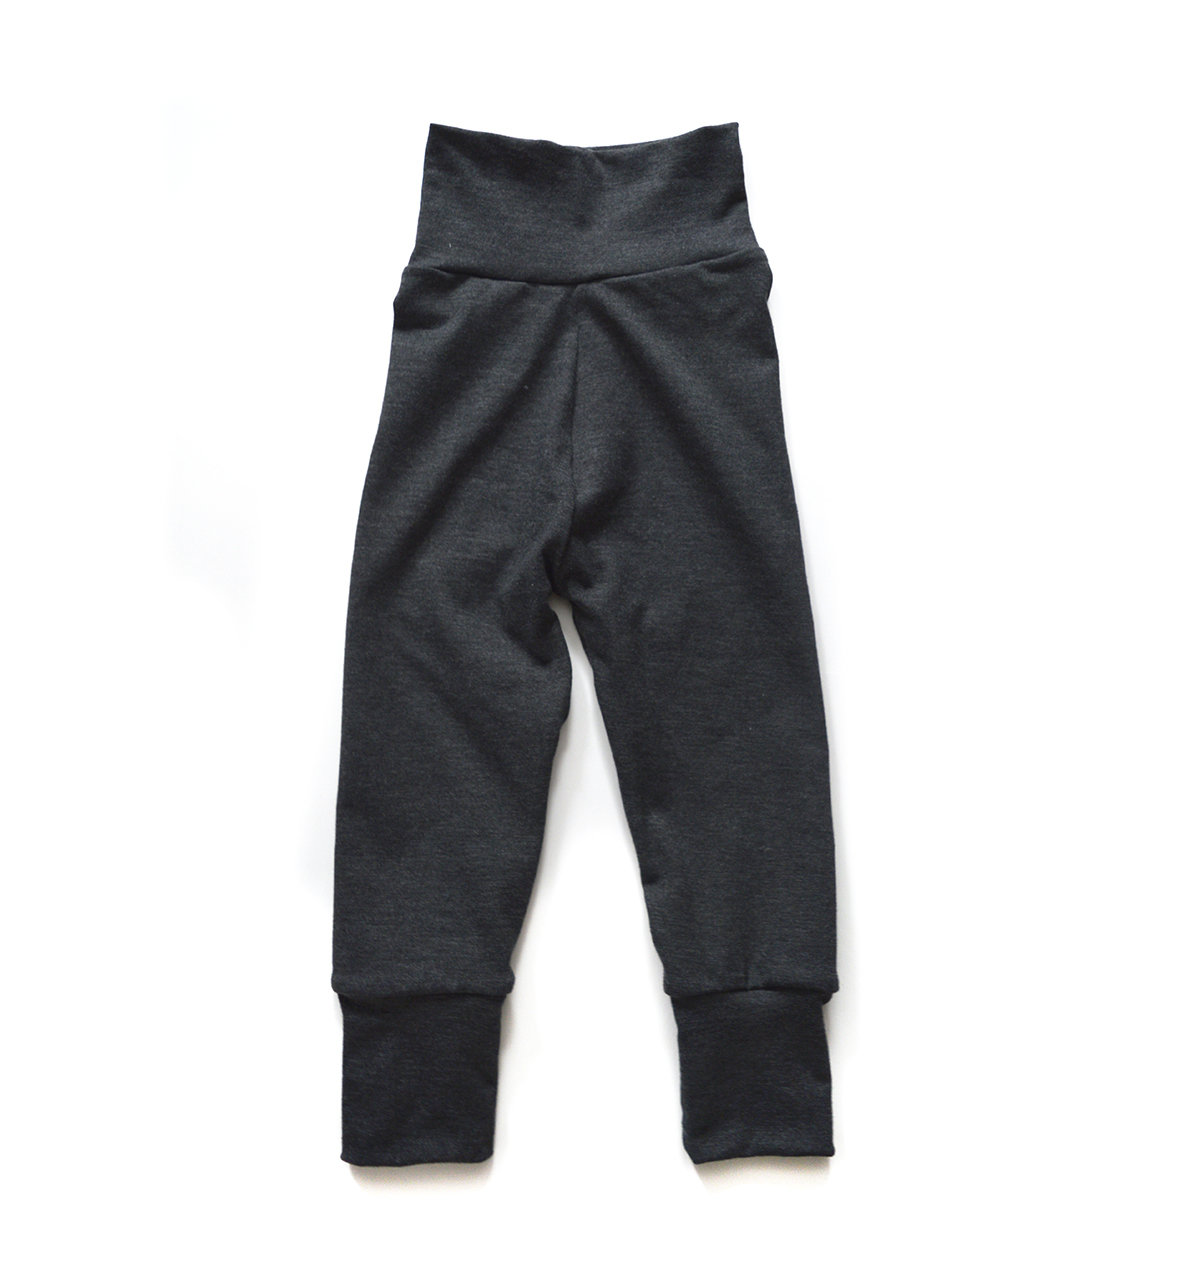 Little Sprout Pants™ Charcoal - Regular Fit 00484